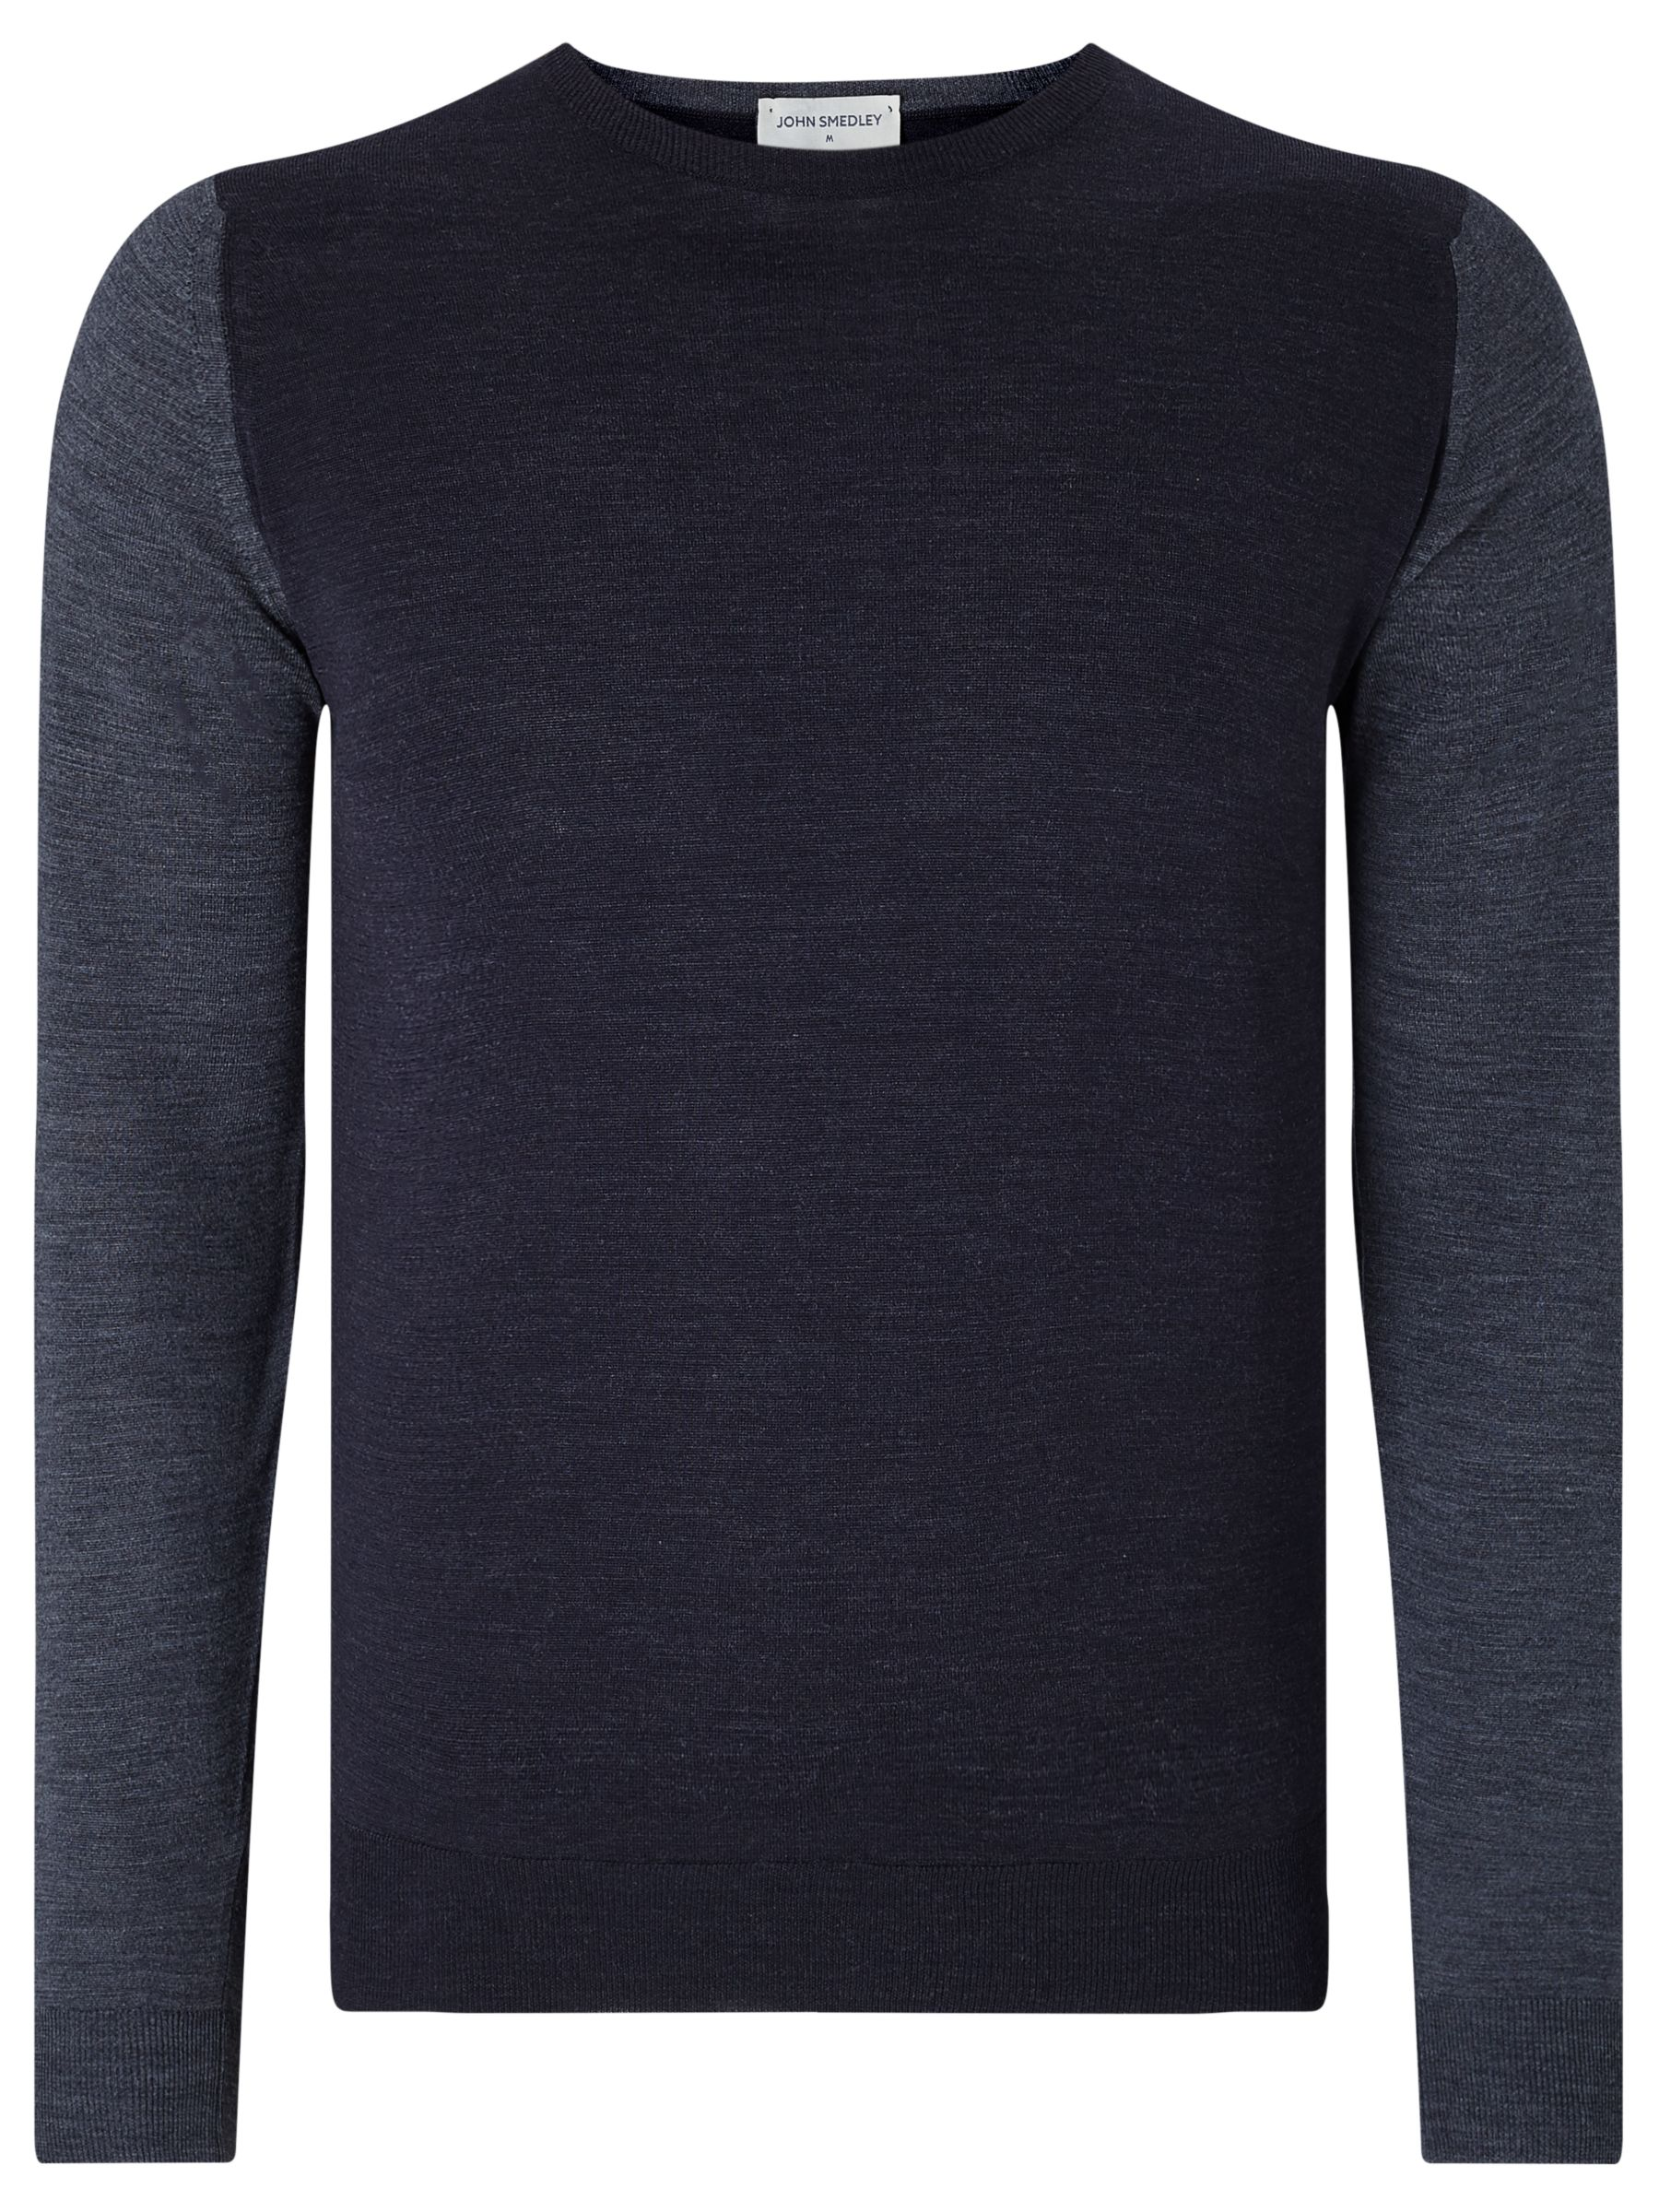 John Smedley John Smedley Hindlow Contrast Body Crew Neck Jumper, Navy/Feather Grey